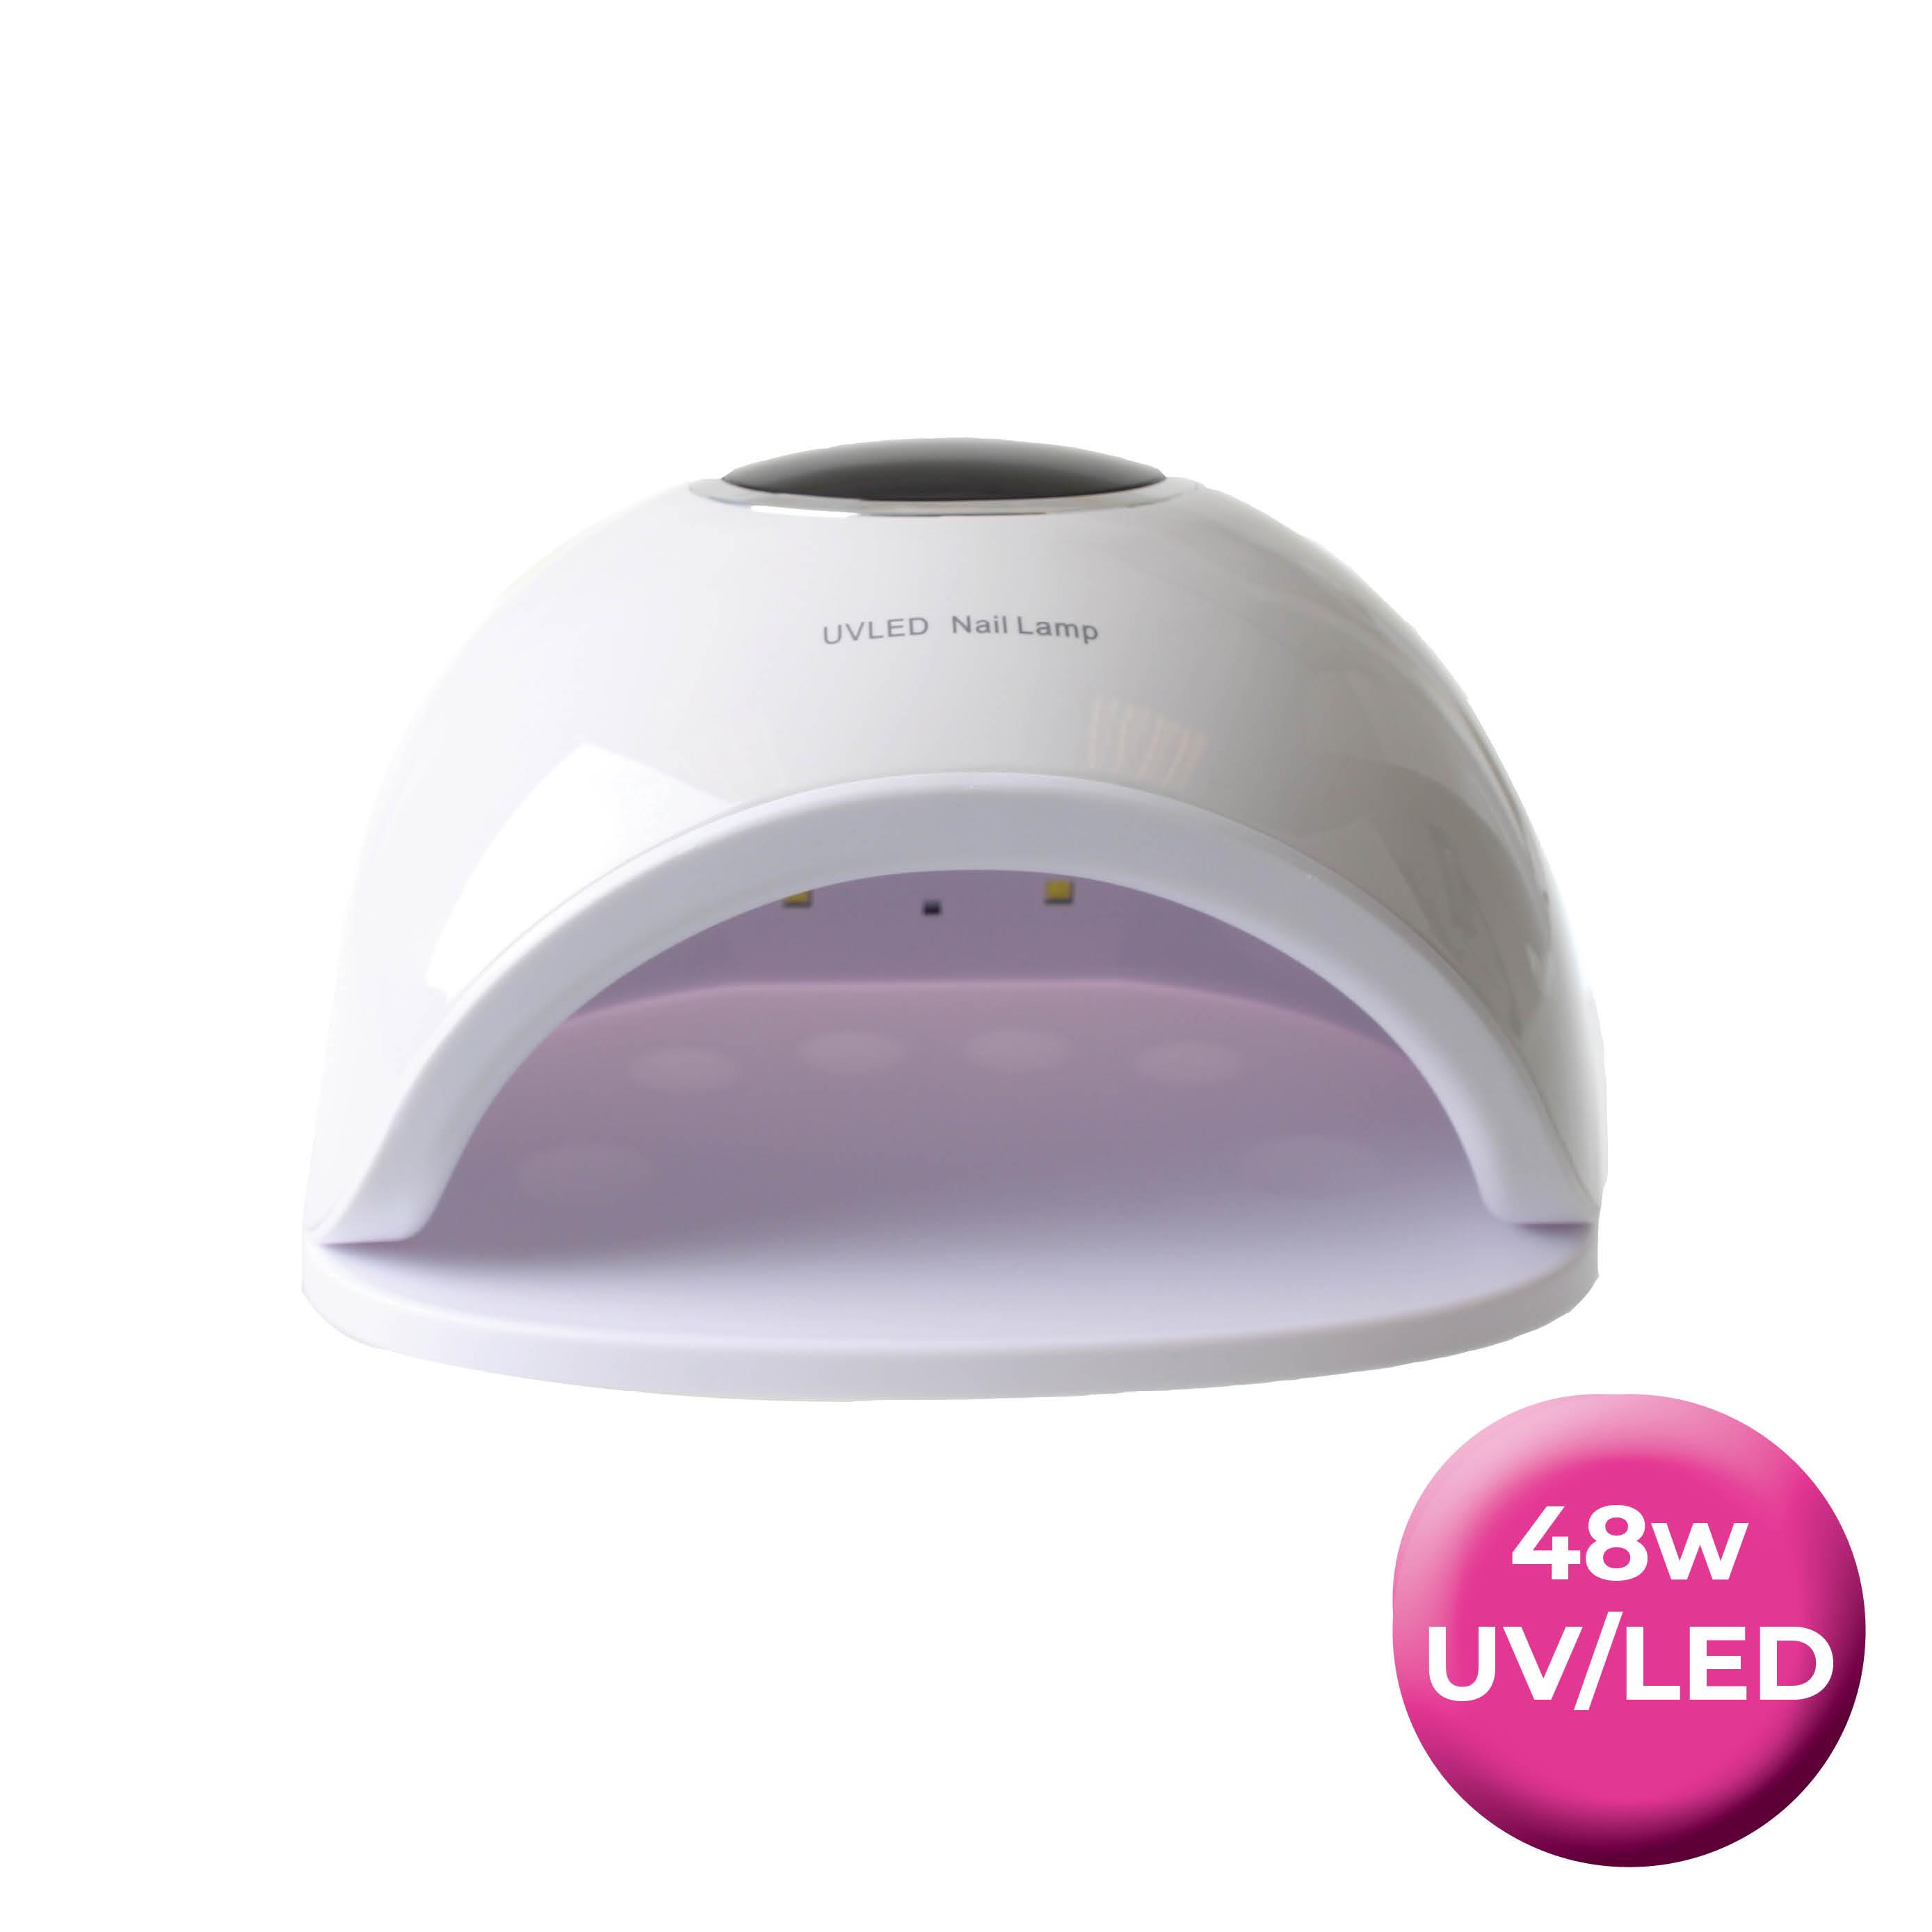 Soft Curing LED Nail Lamp 48w